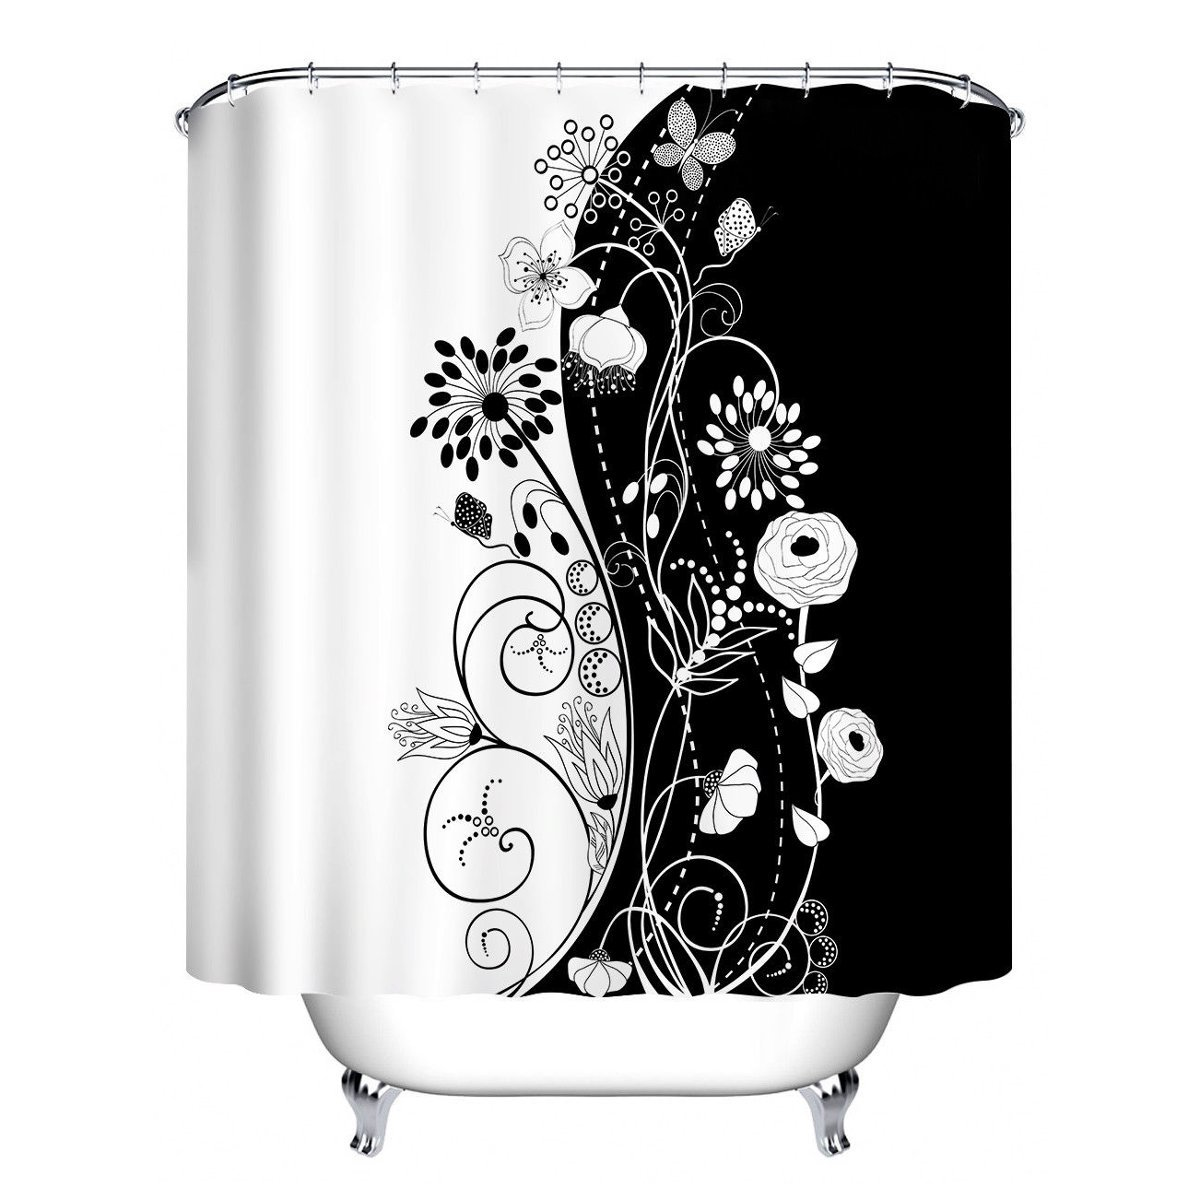 150*180/180*180 cm Black & White Flowers Shower Curtain Set Bathroom Waterproof Fabric With 12 Hooks